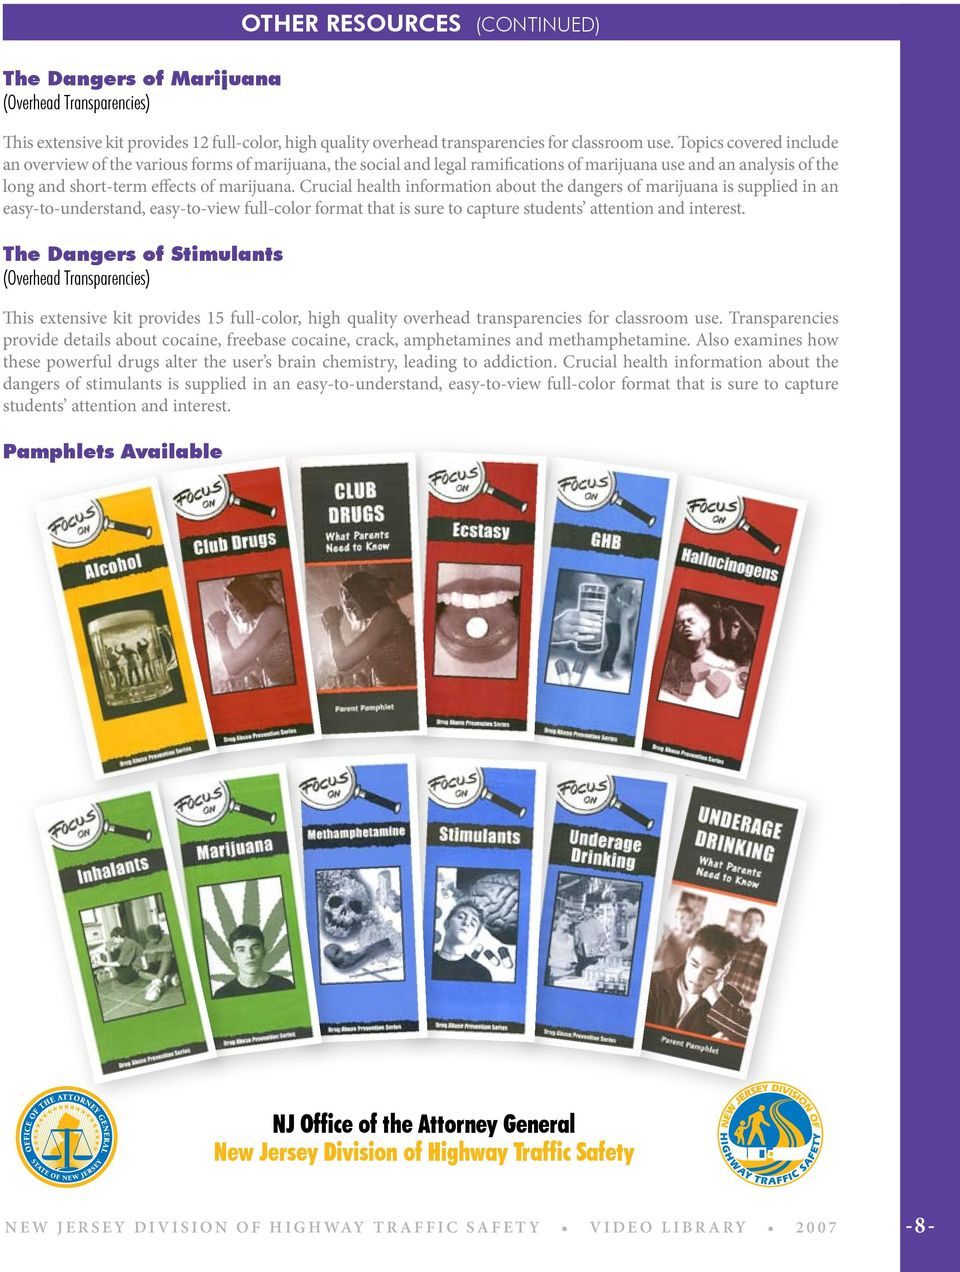 Crucial health information about the dangers of marijuana is supplied in an easy-to-understand, easy-to-view full-color format that is sure to capture students attention and interest.